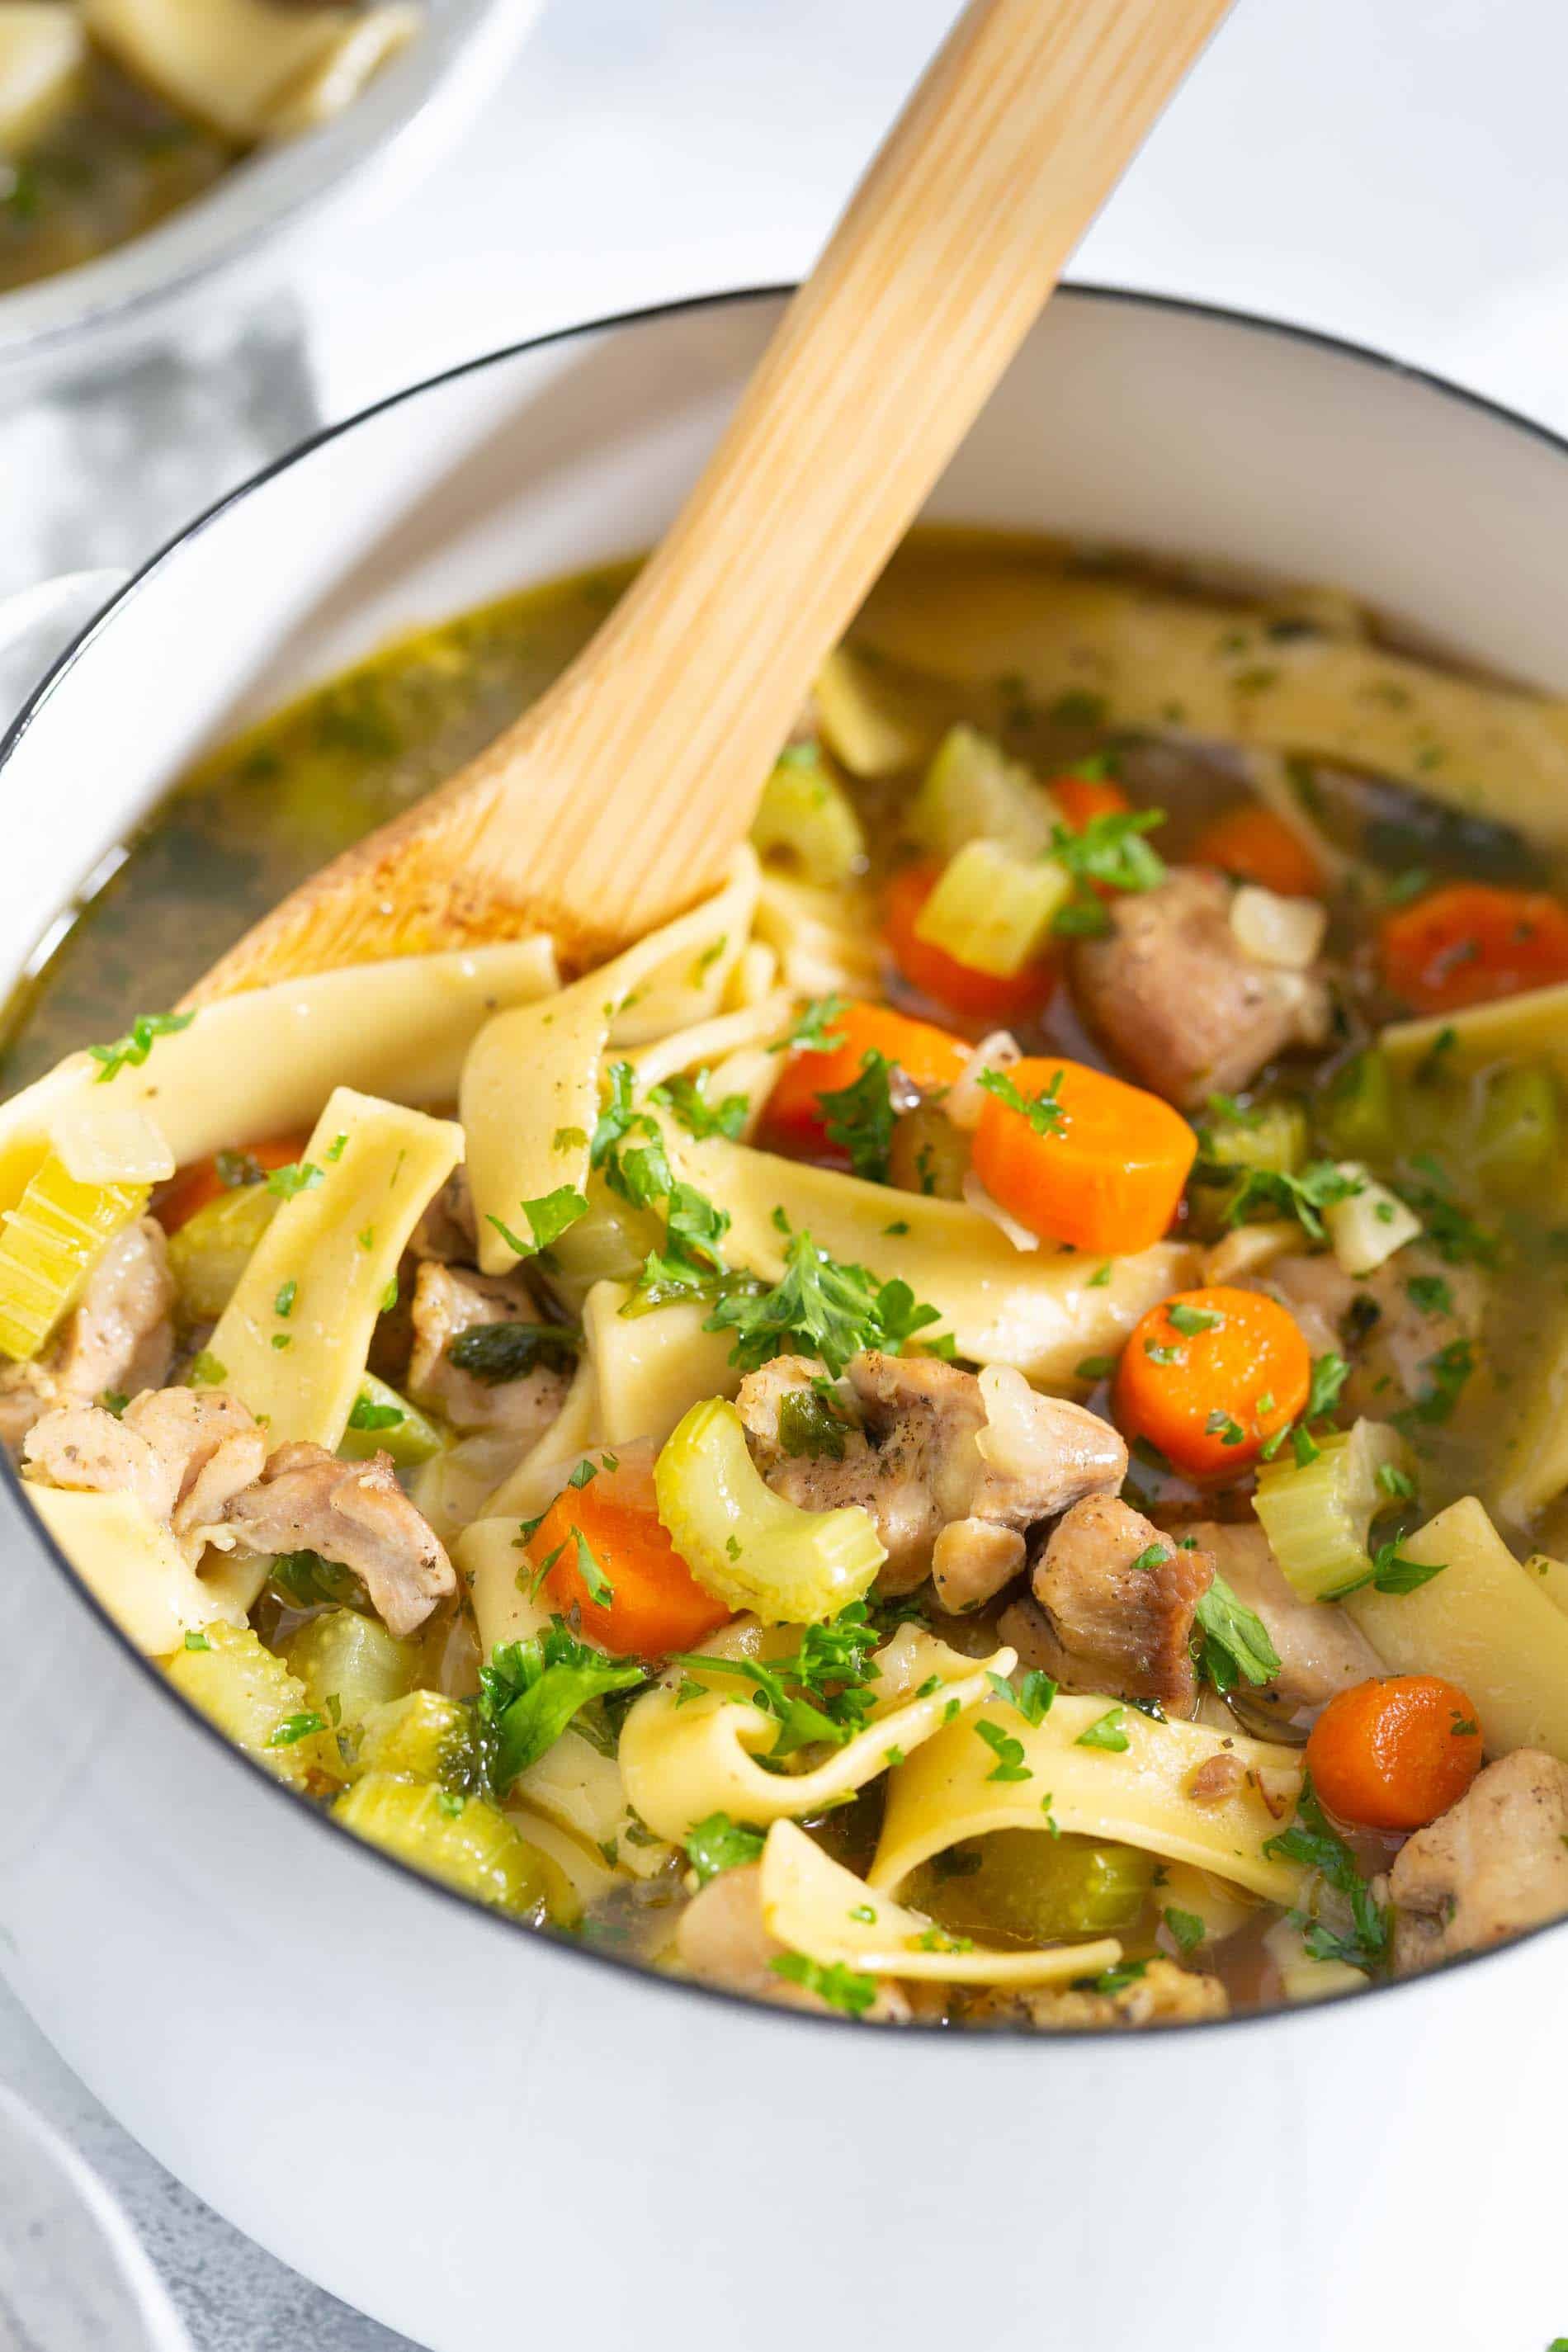 Best Chicken Noodle Soup Flavorful Chicken Noodle Soup Recipe